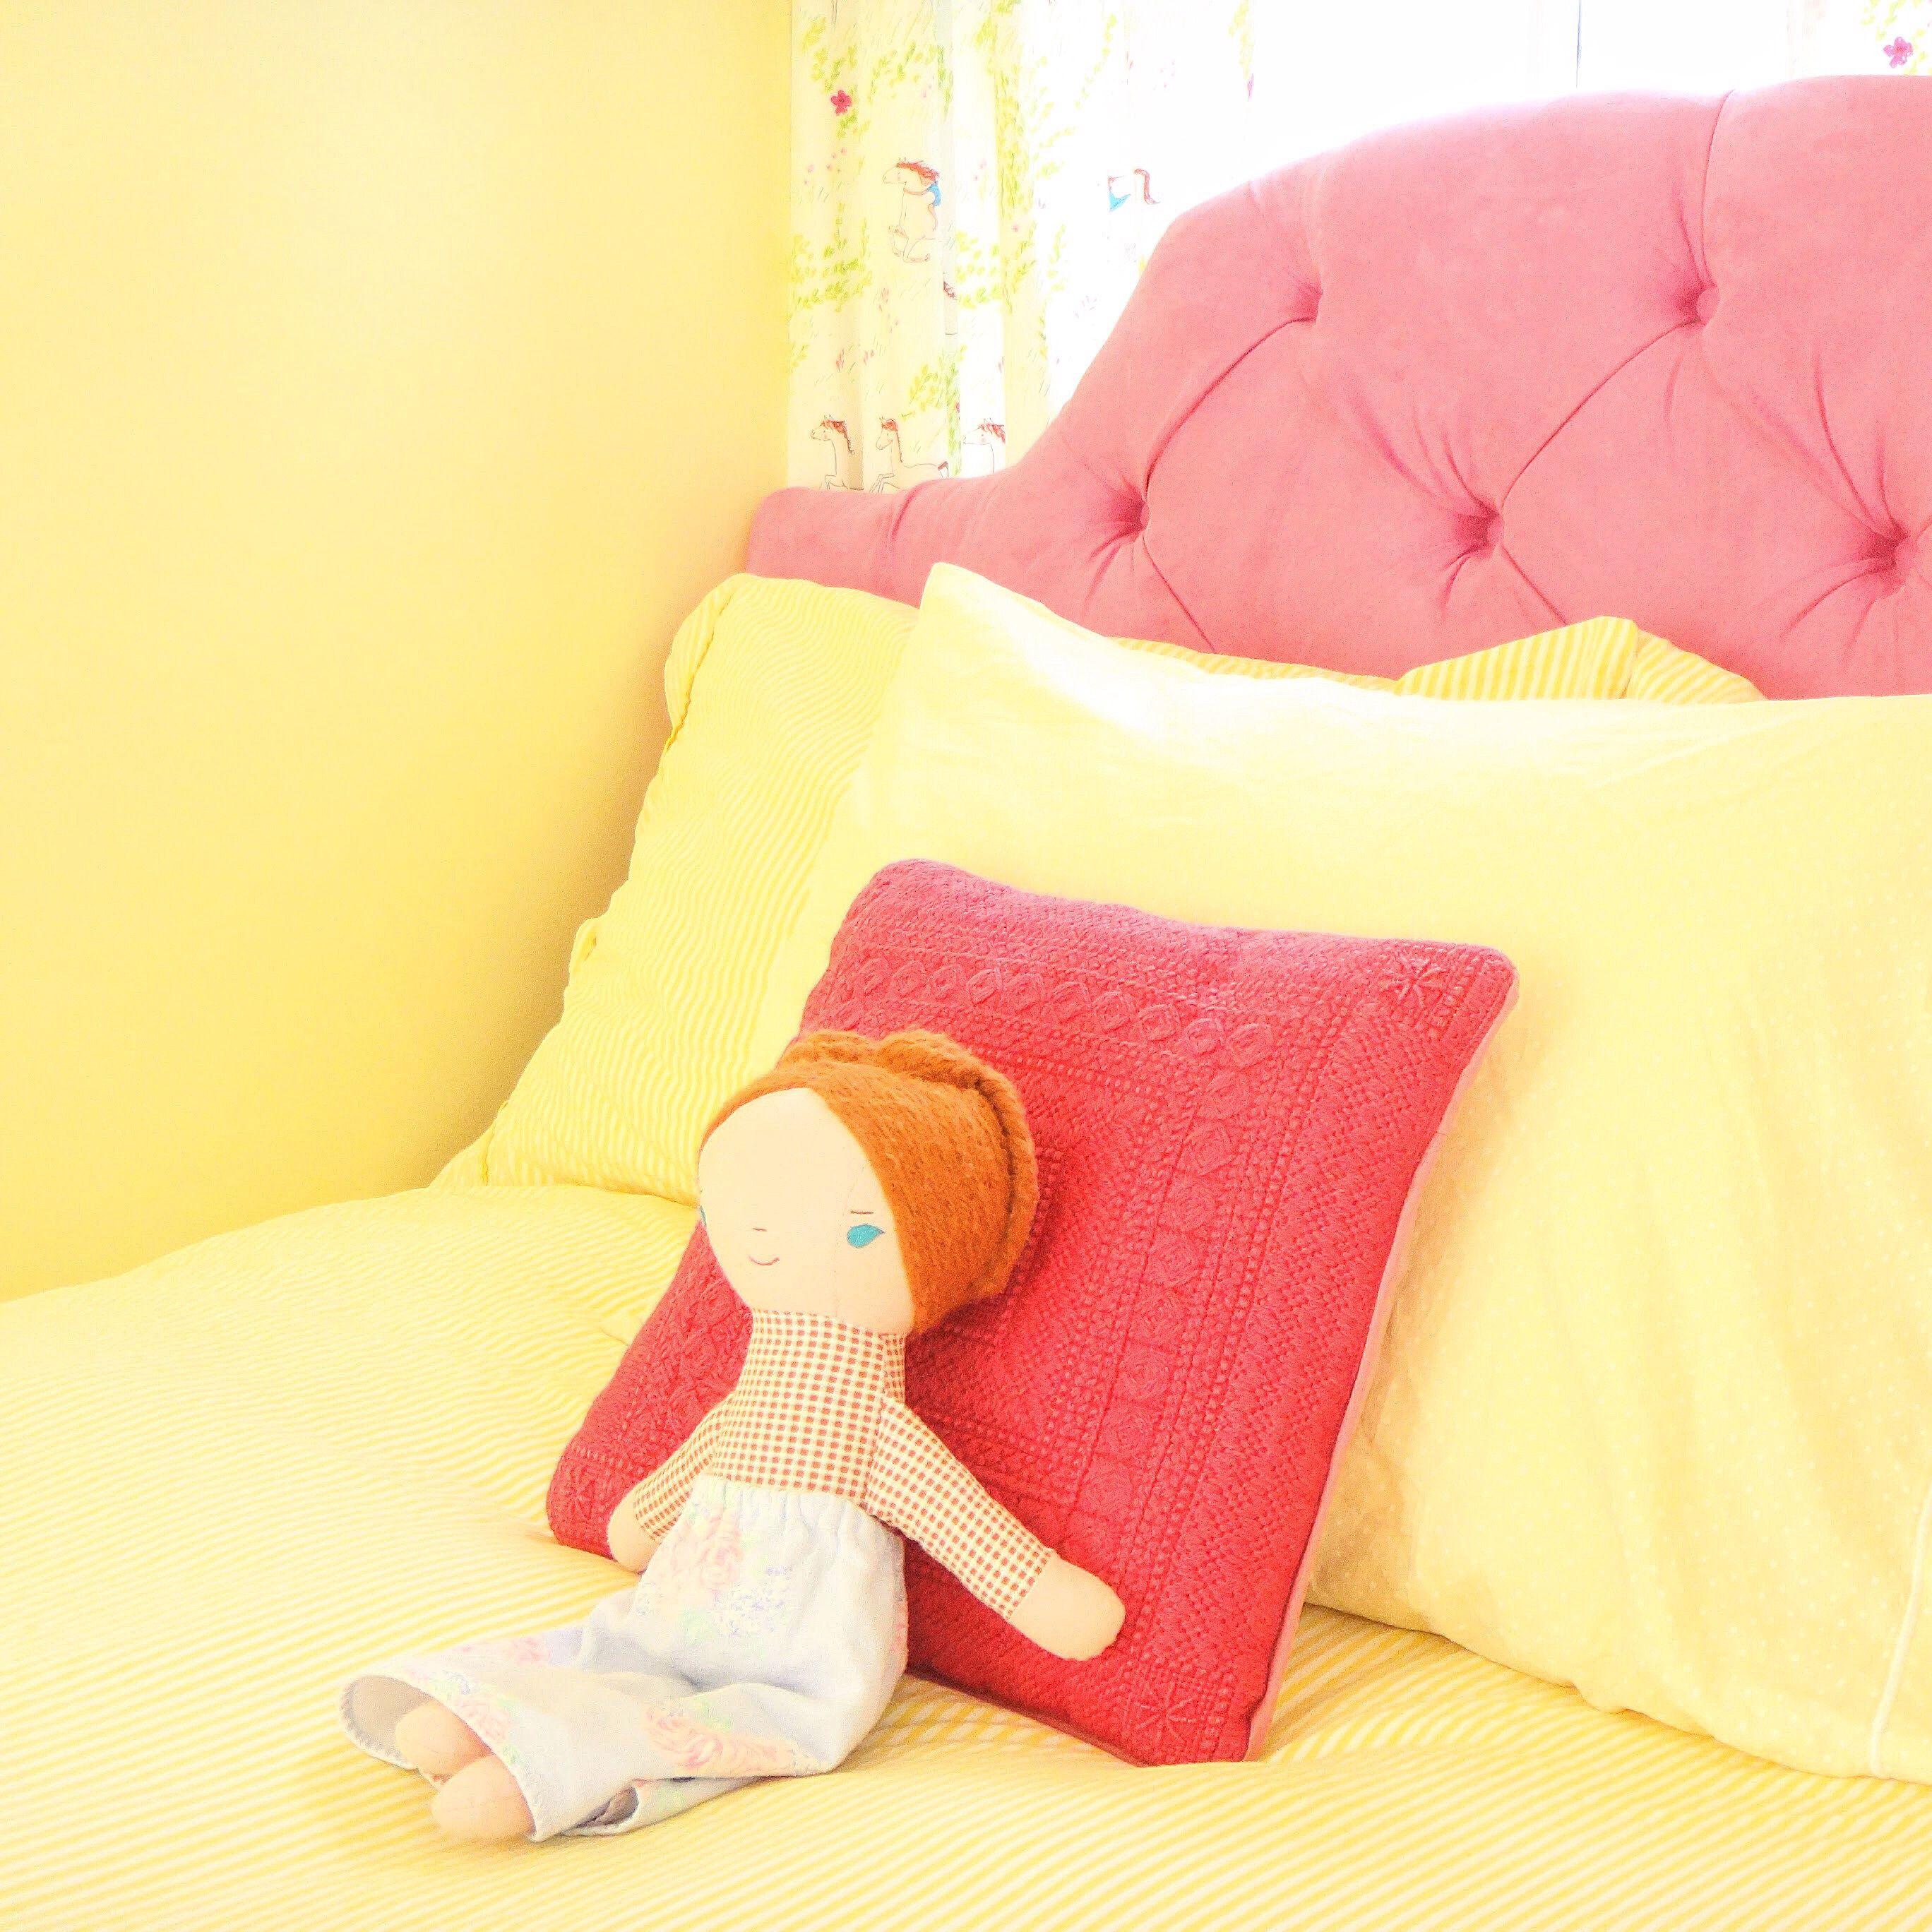 Trixie's doll by Wee Wonderfuls  #doll #kidsroom